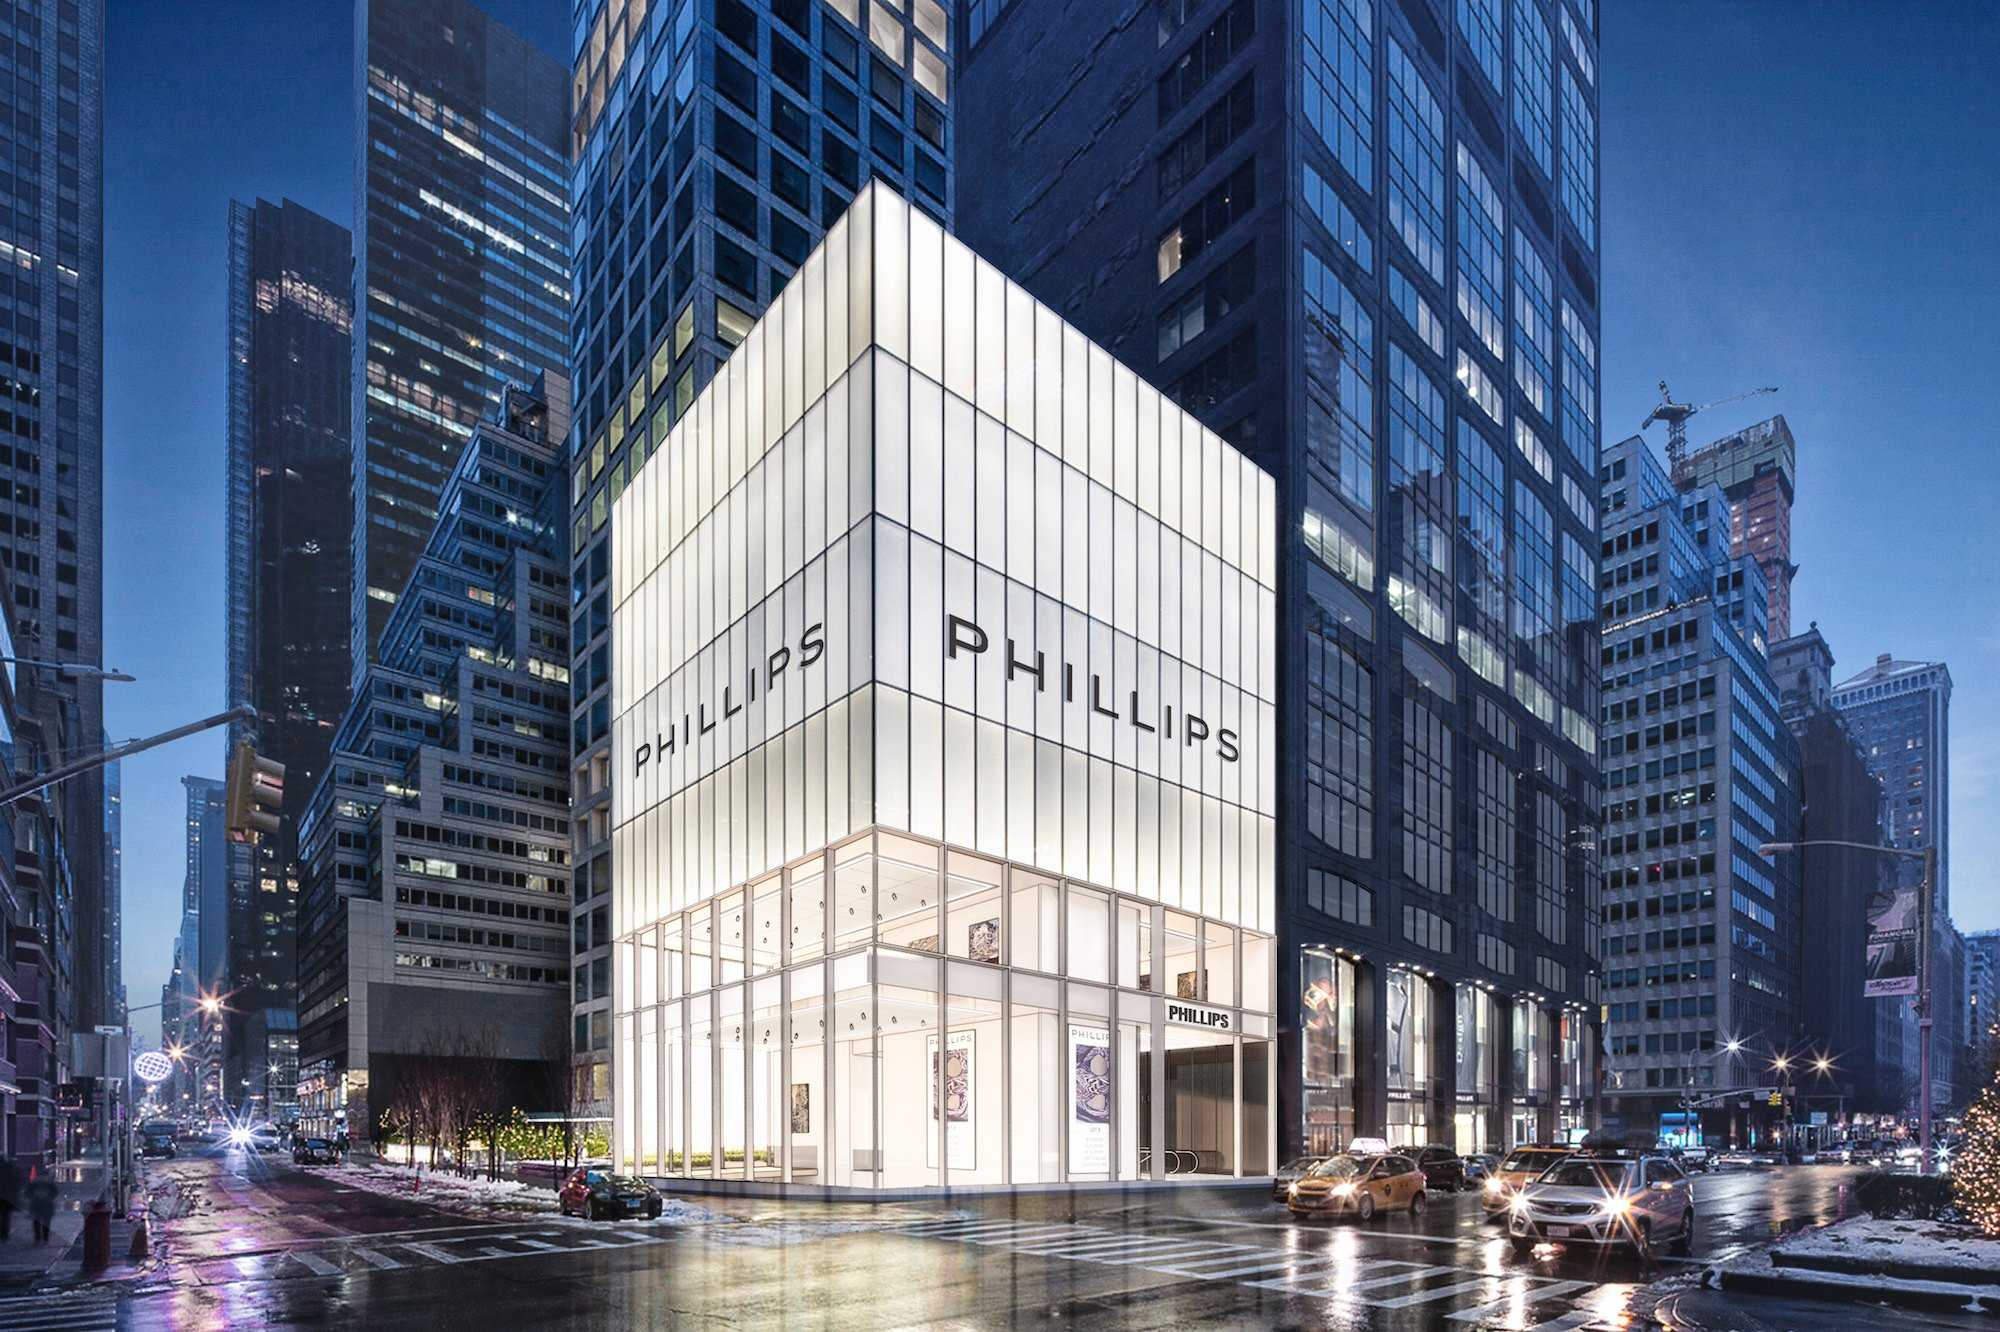 phillips auction house nyc